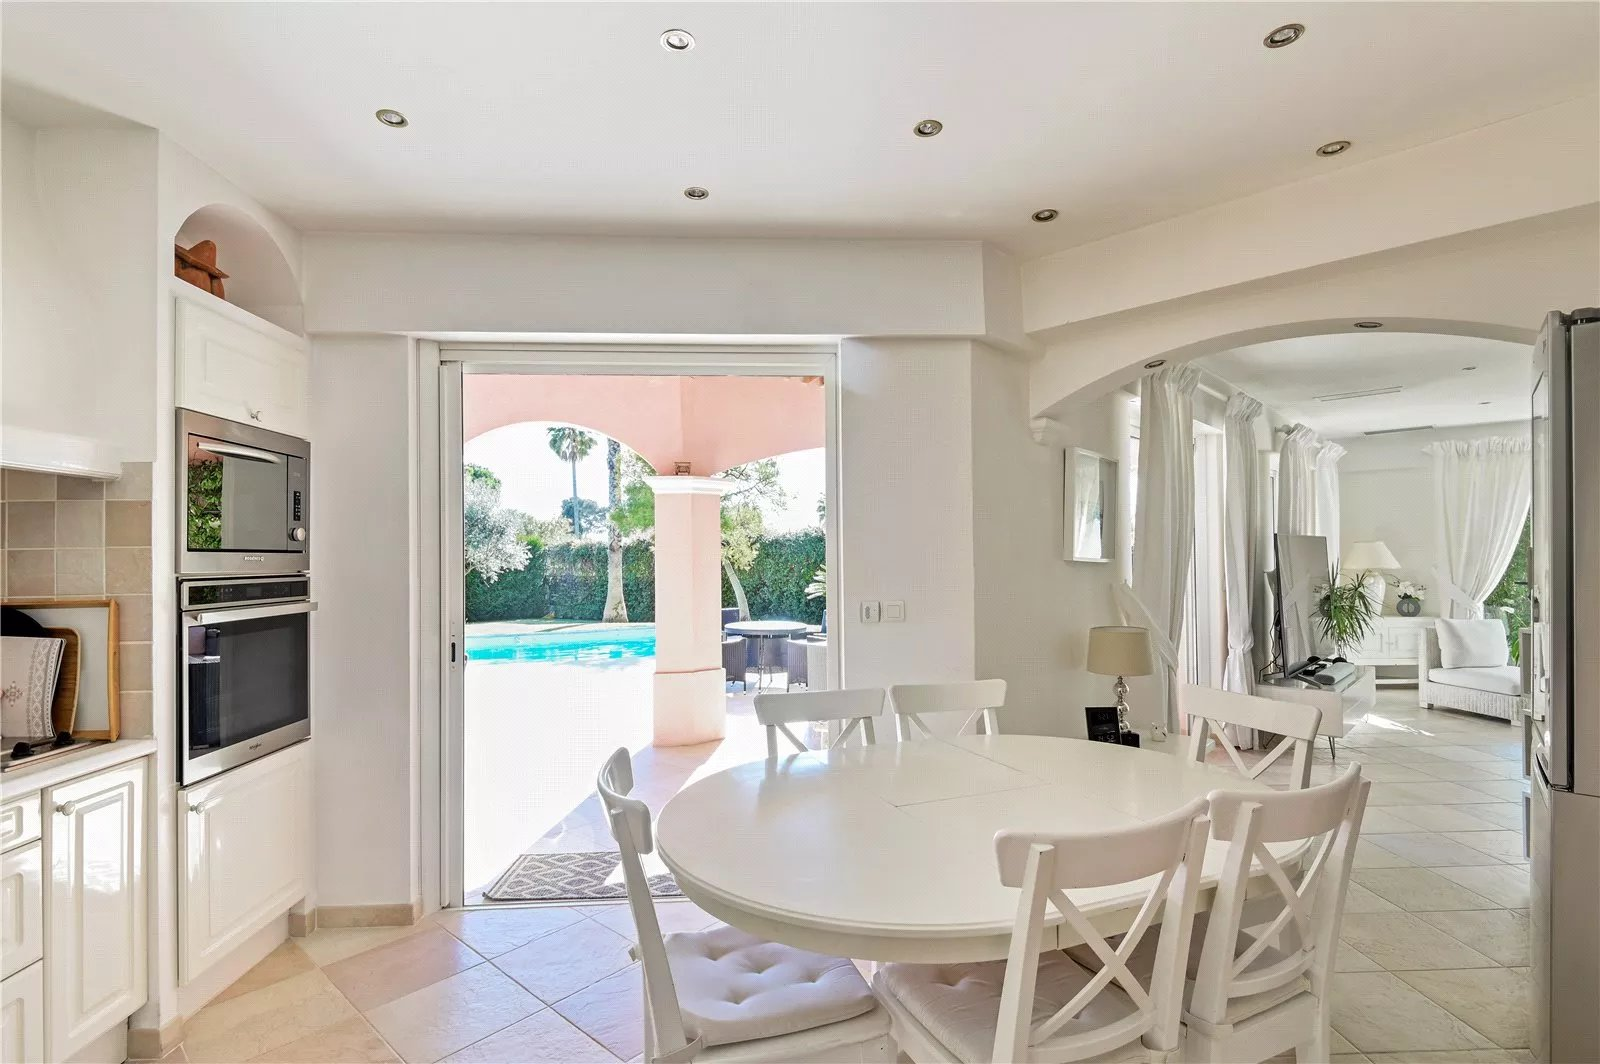 Buying Villa Cap d'Antibes Charming four en suite bedroom villa with pool, ideally located for the beaches.